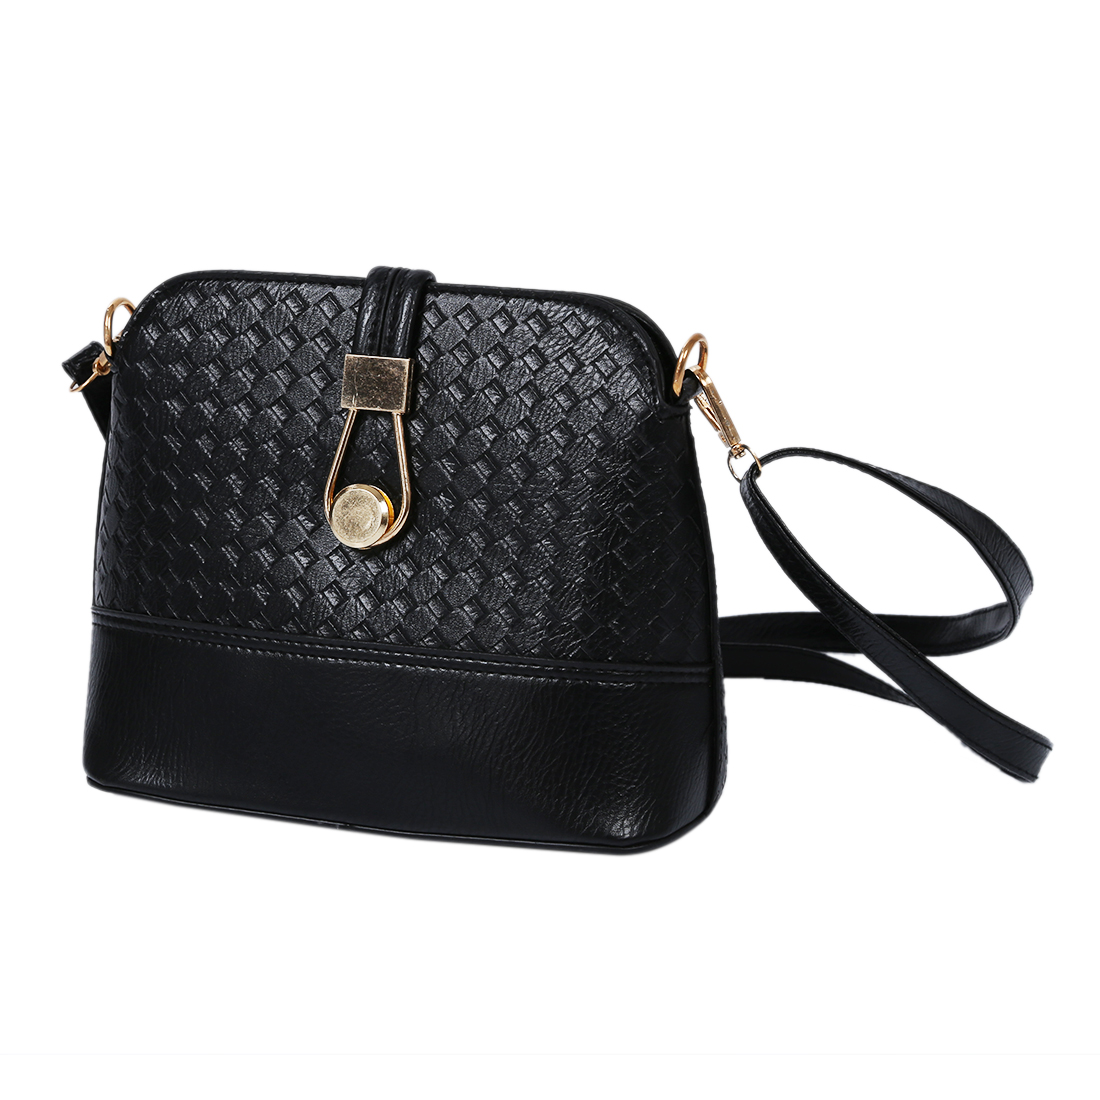 Weave shell small handbags new fashion women tote evening clutch ladies party purse crossbody shoulder messenger bags Black shell small handbags new 2017 fashion ladies leather handbag casual purse designer crossbody shoulder bag women messenger bags